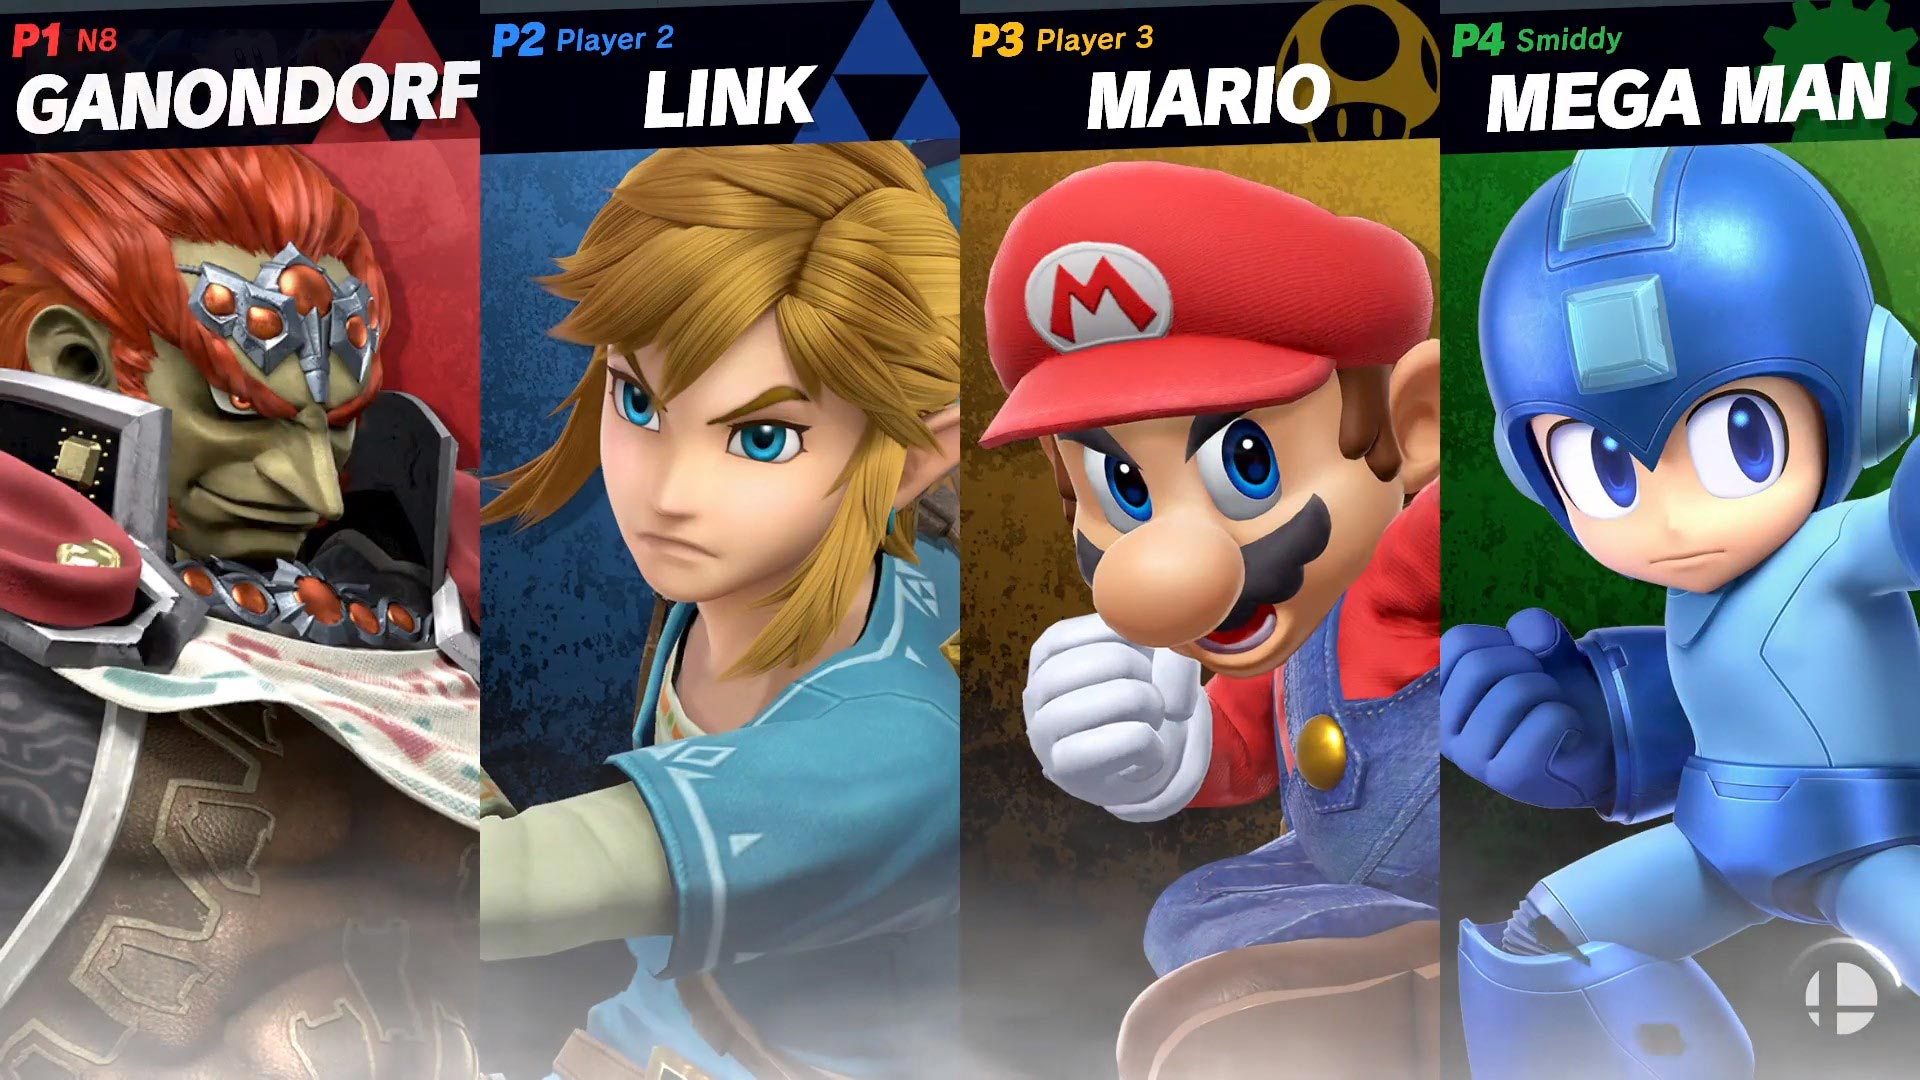 Smash Ultimate Screens 3 out of 3 image gallery